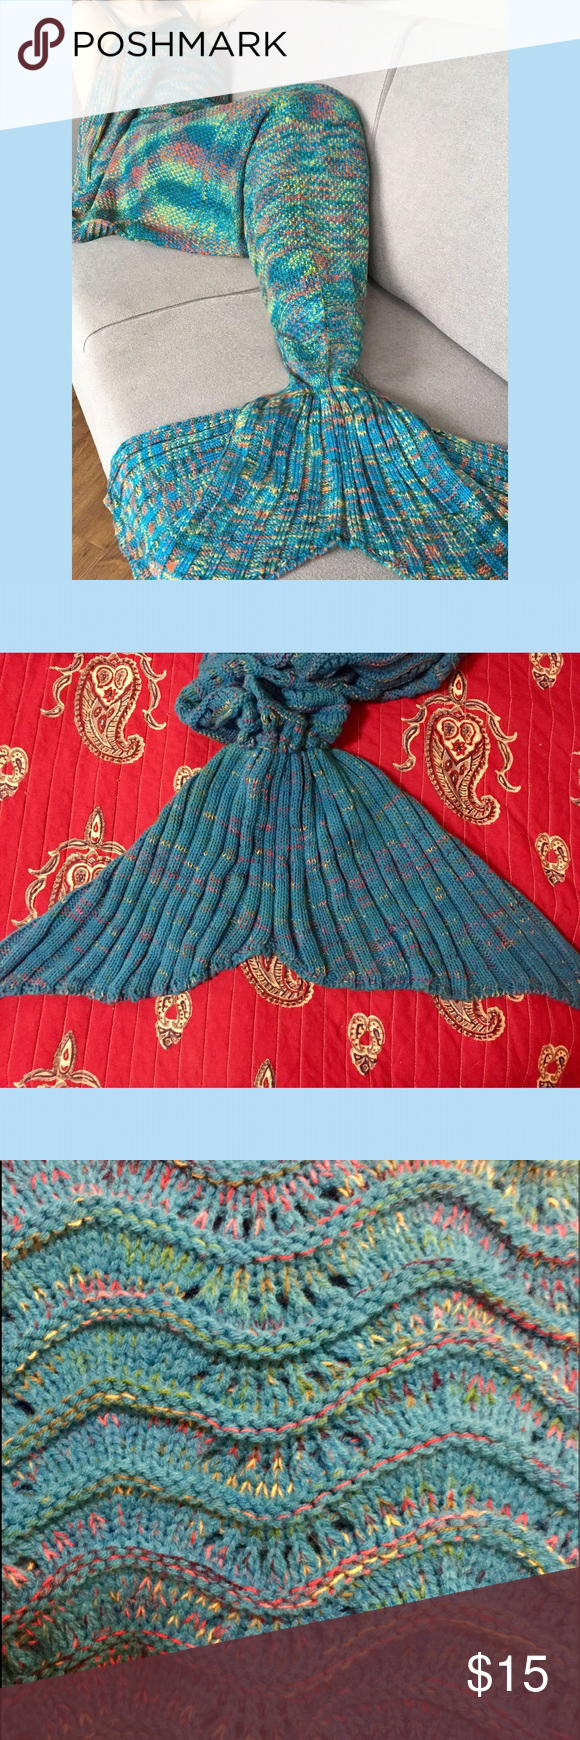 Mermaid Tail Blanket Snuggle up in this knit mermaid tail, rest your fins and enjoy a movie or a good book. Brand new with tags, never used. Every fish in the sea is sure to be happy as a clam with this fun, stylish trend! Intimates & Sleepwear Pajamas